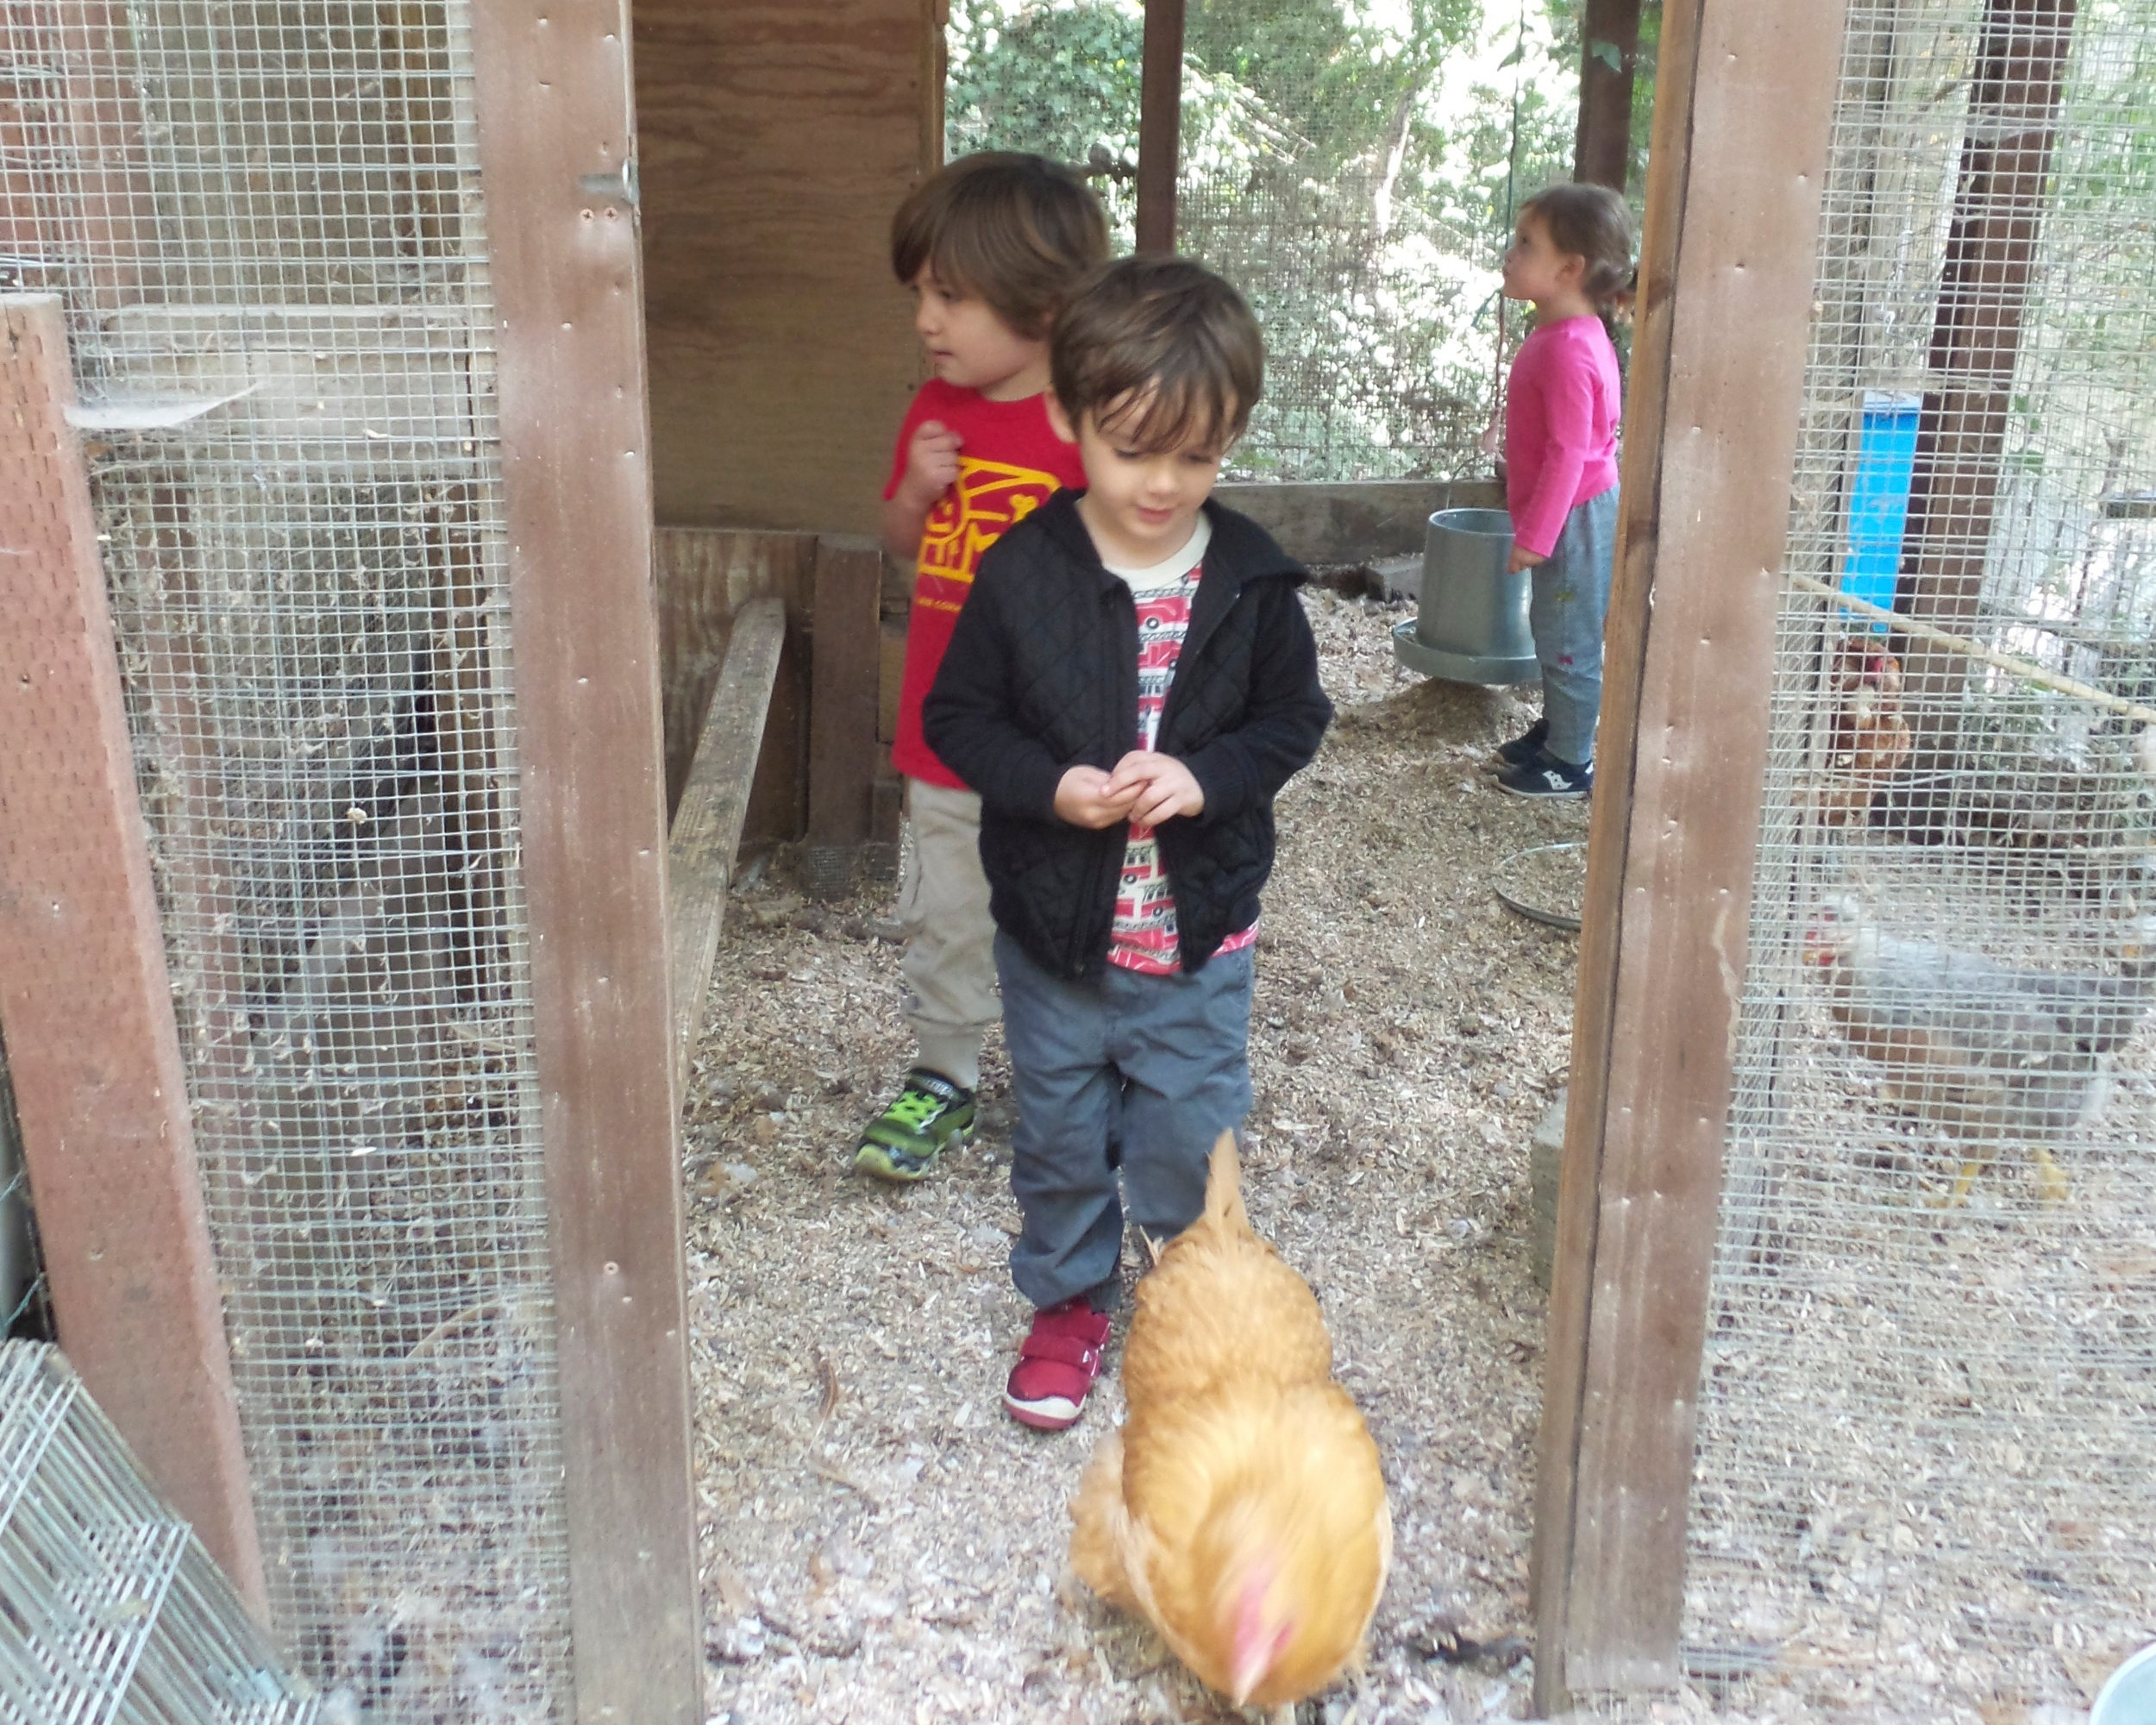 NATURE AREA - This hilly area is home to the MCPC chickens as well as some gross-motor-skill activities like monkey bars.